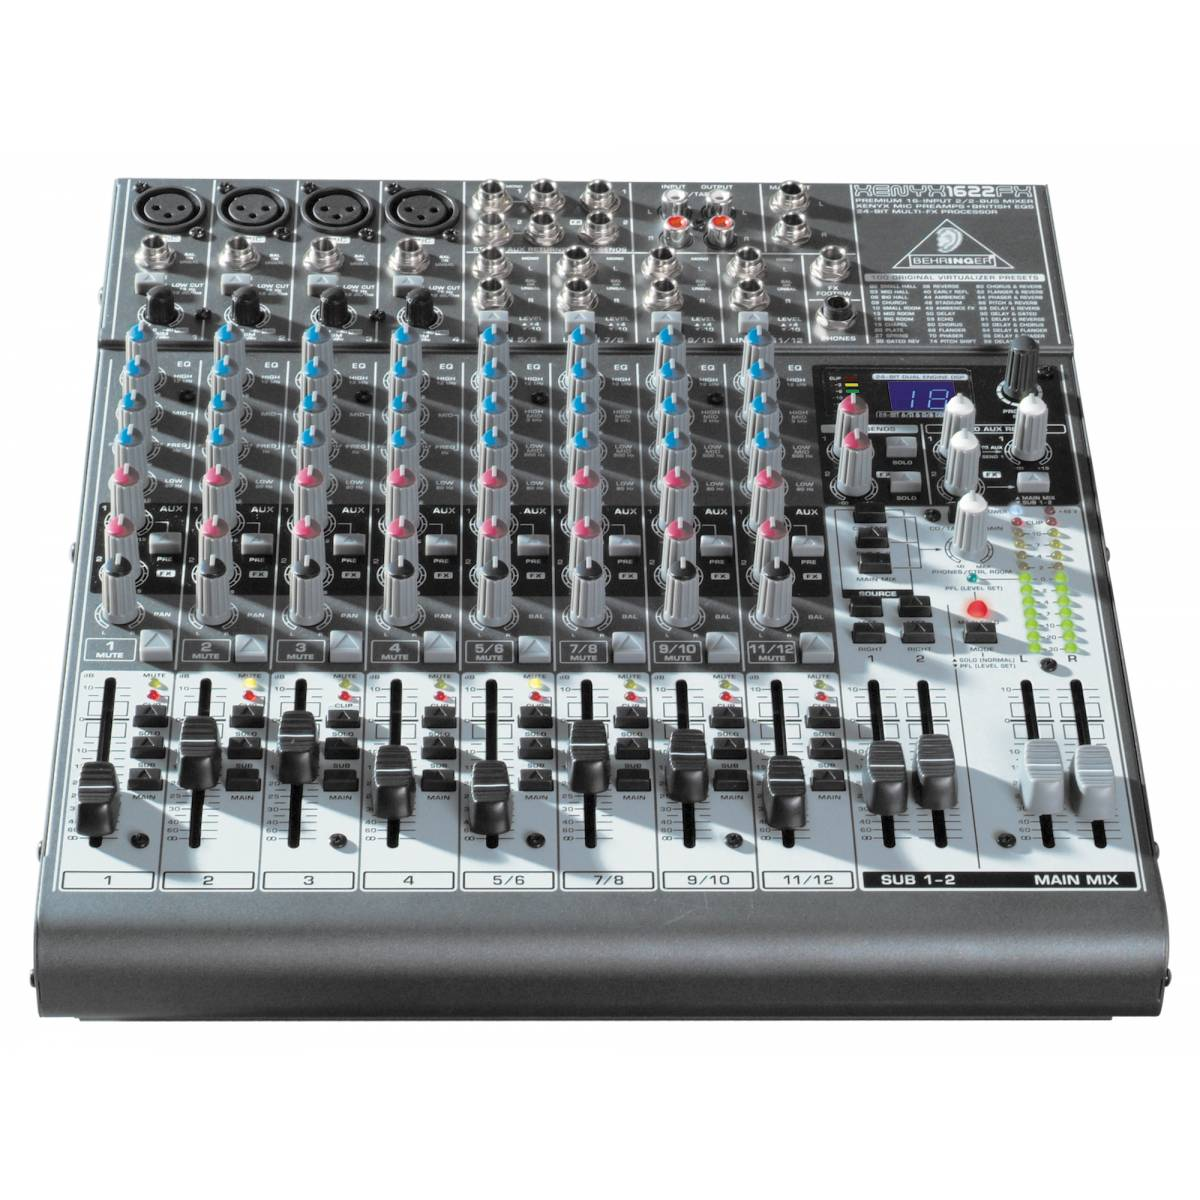 behringer xenyx 1622fx analogue mixer. Black Bedroom Furniture Sets. Home Design Ideas